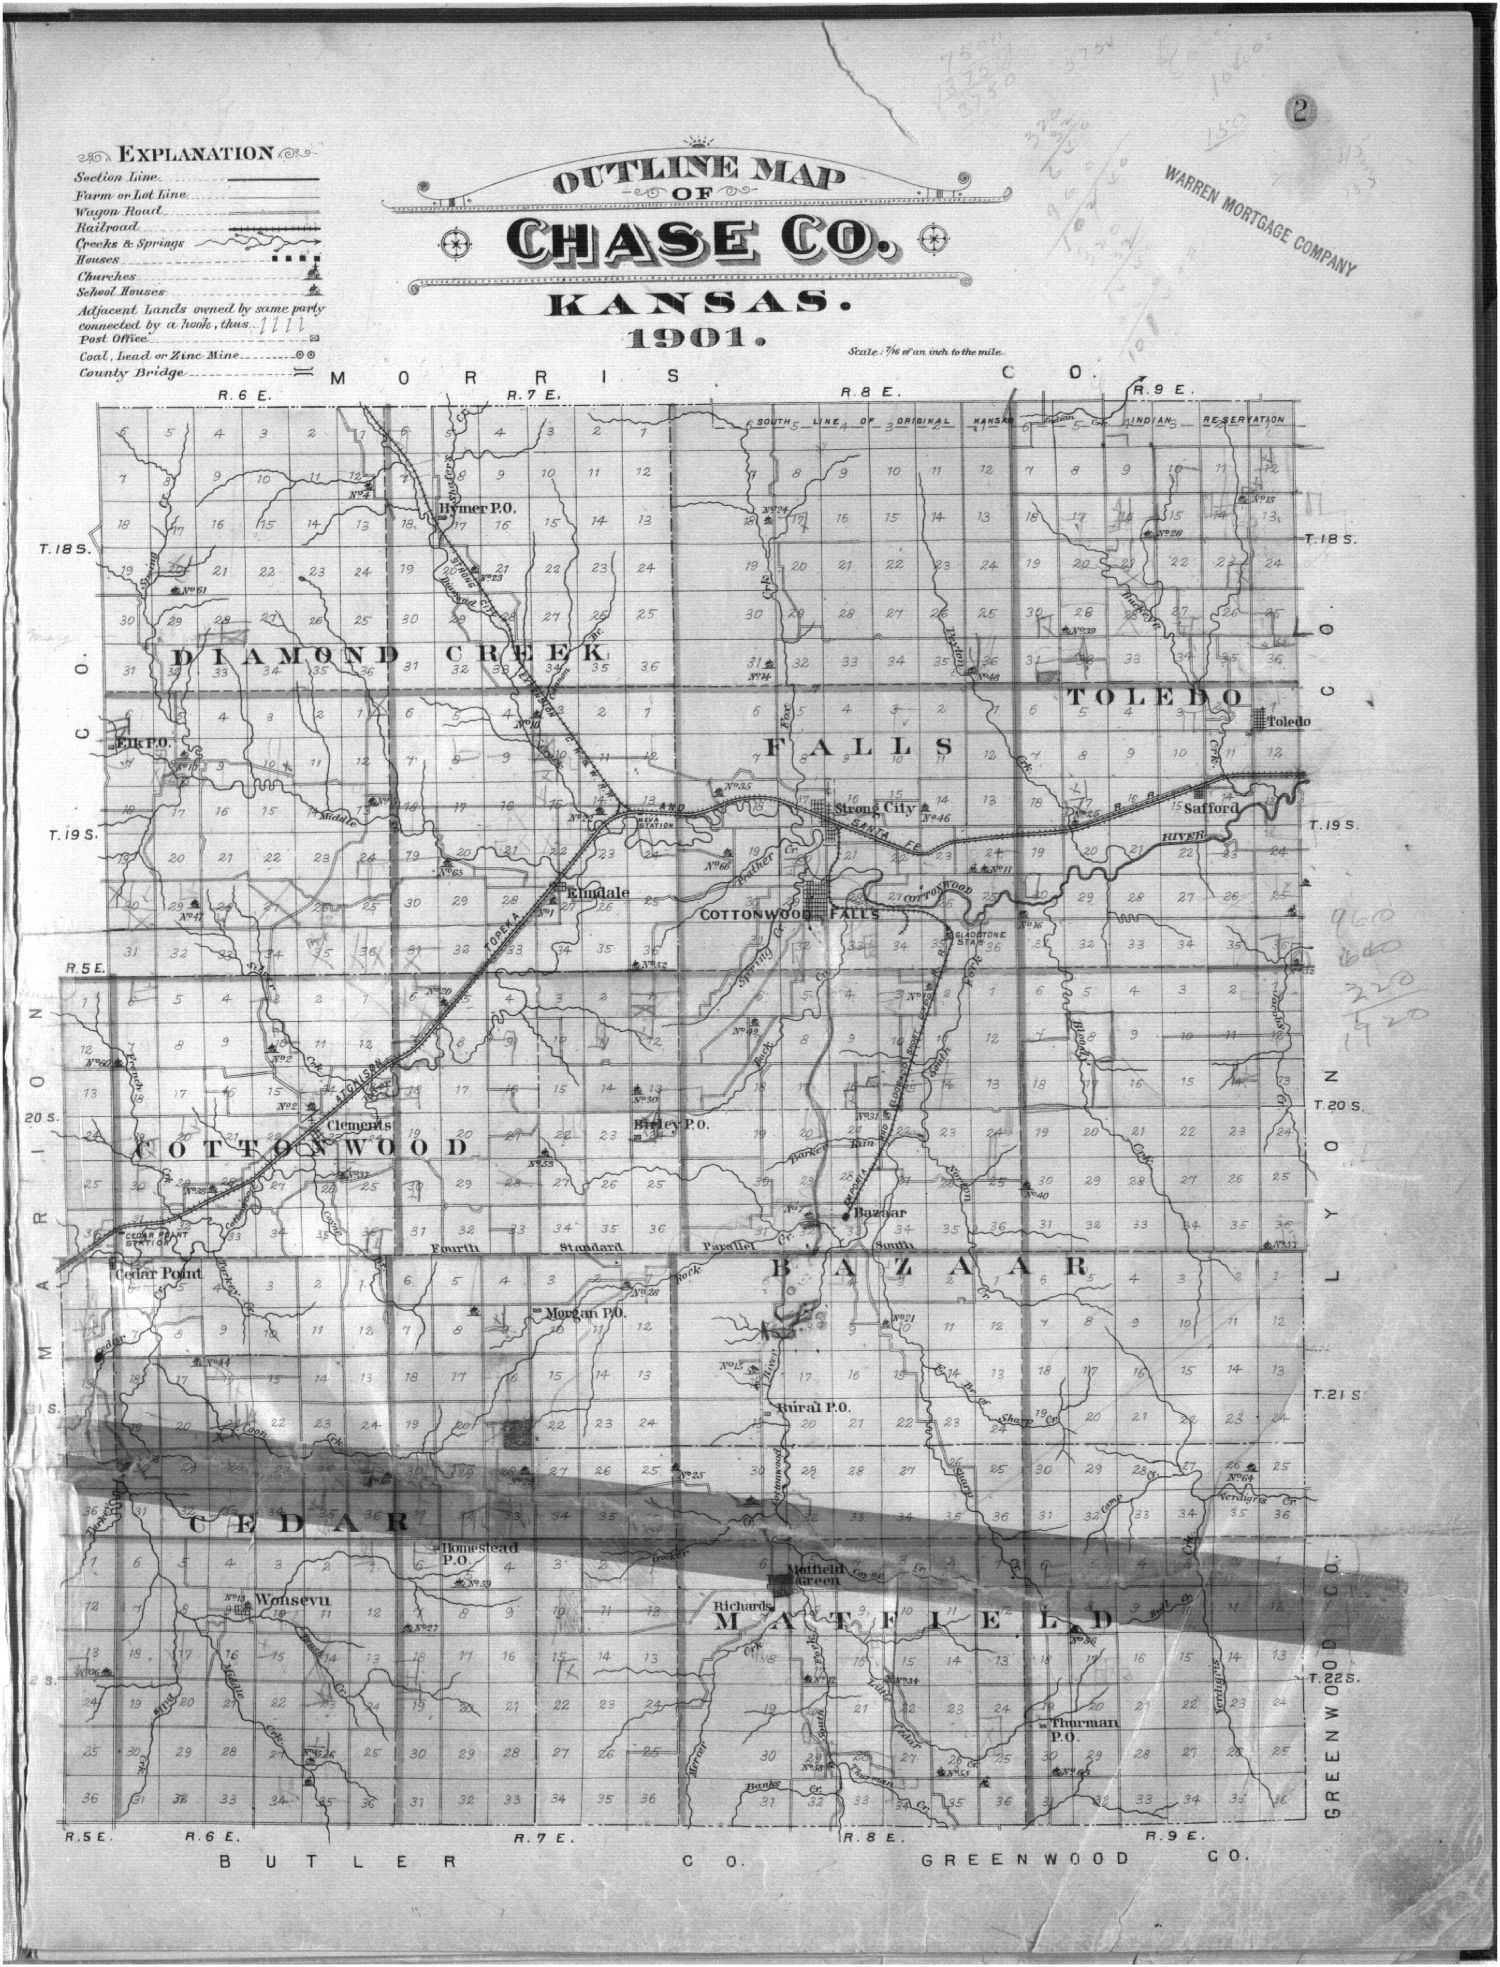 Plat book, Chase County, Kansas - 2